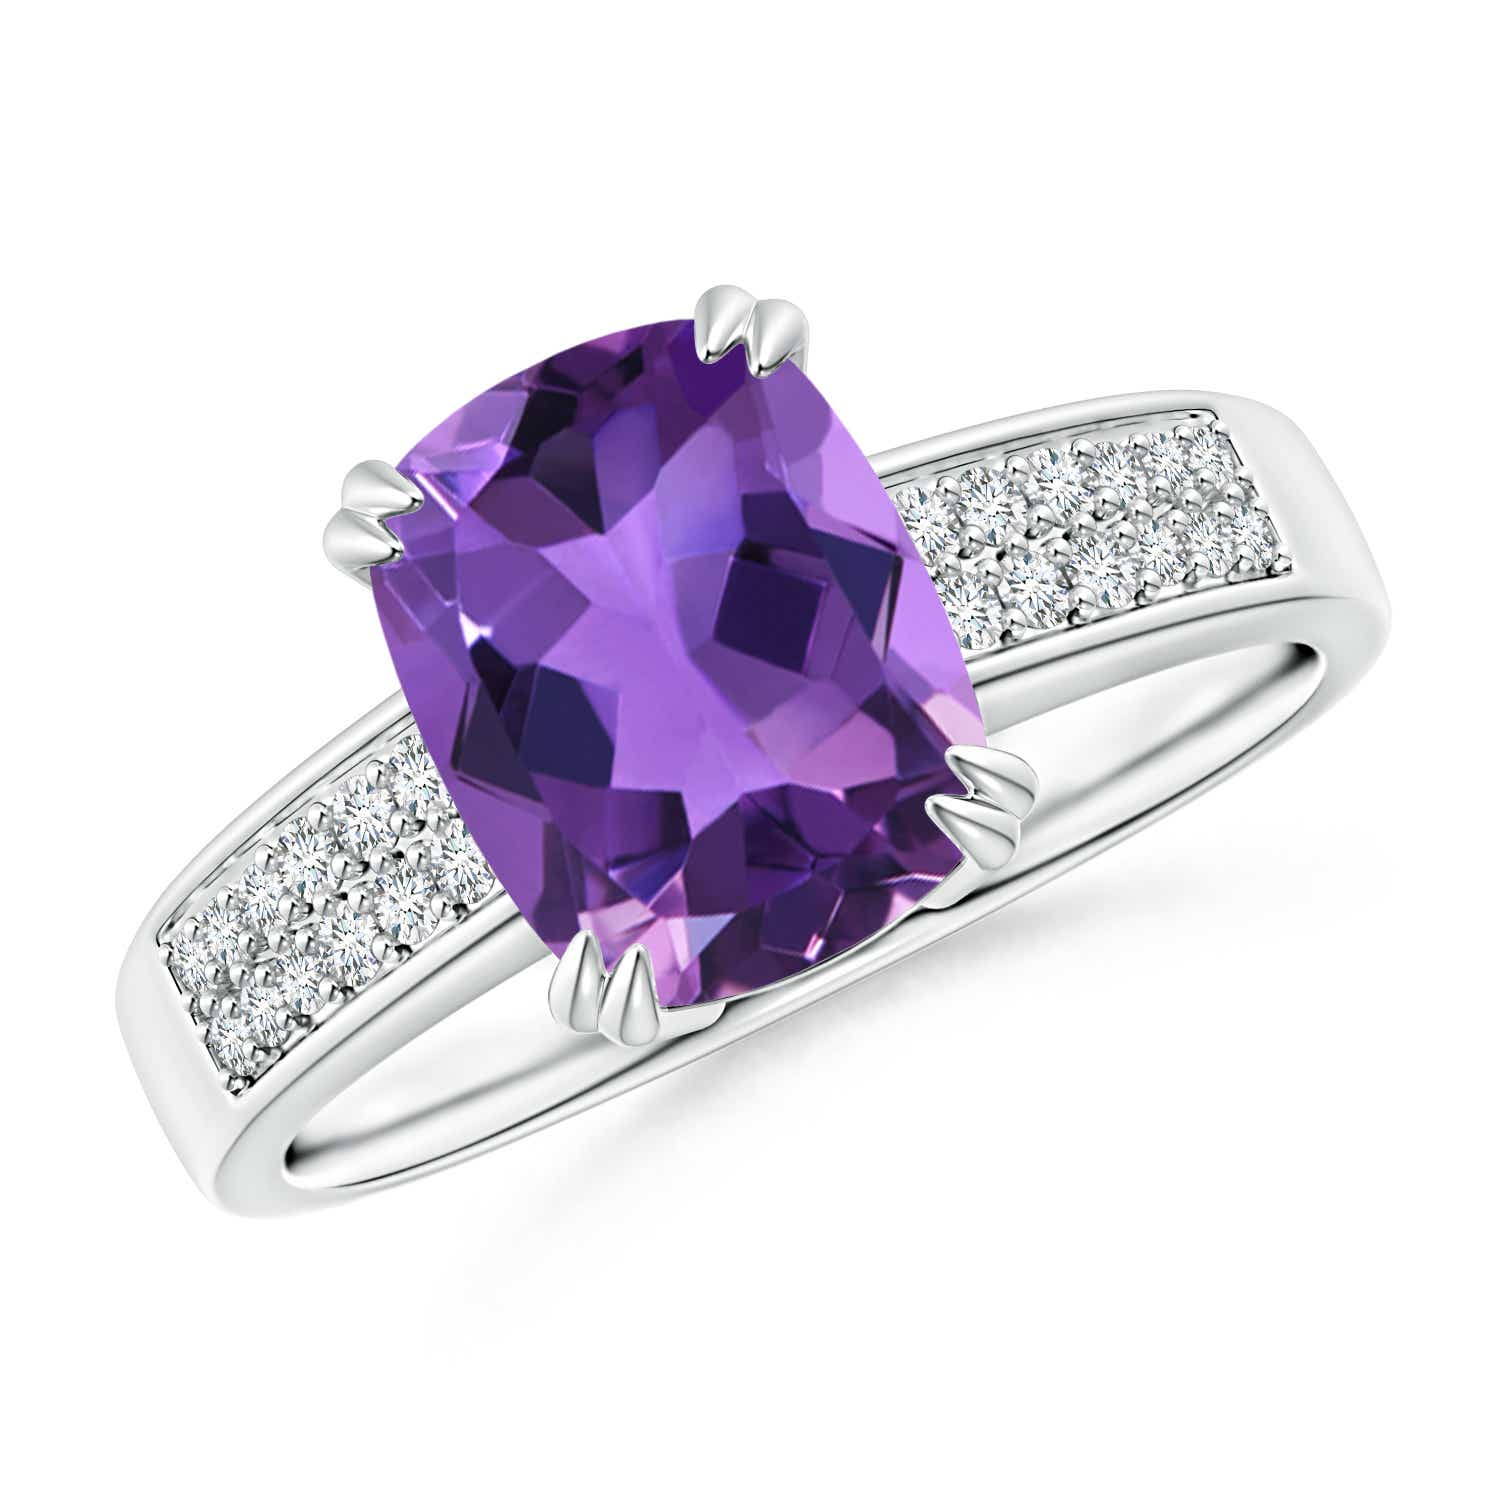 Double Prong-Set Cushion Amethyst Cocktail Ring with Diamond Accents - Angara.com